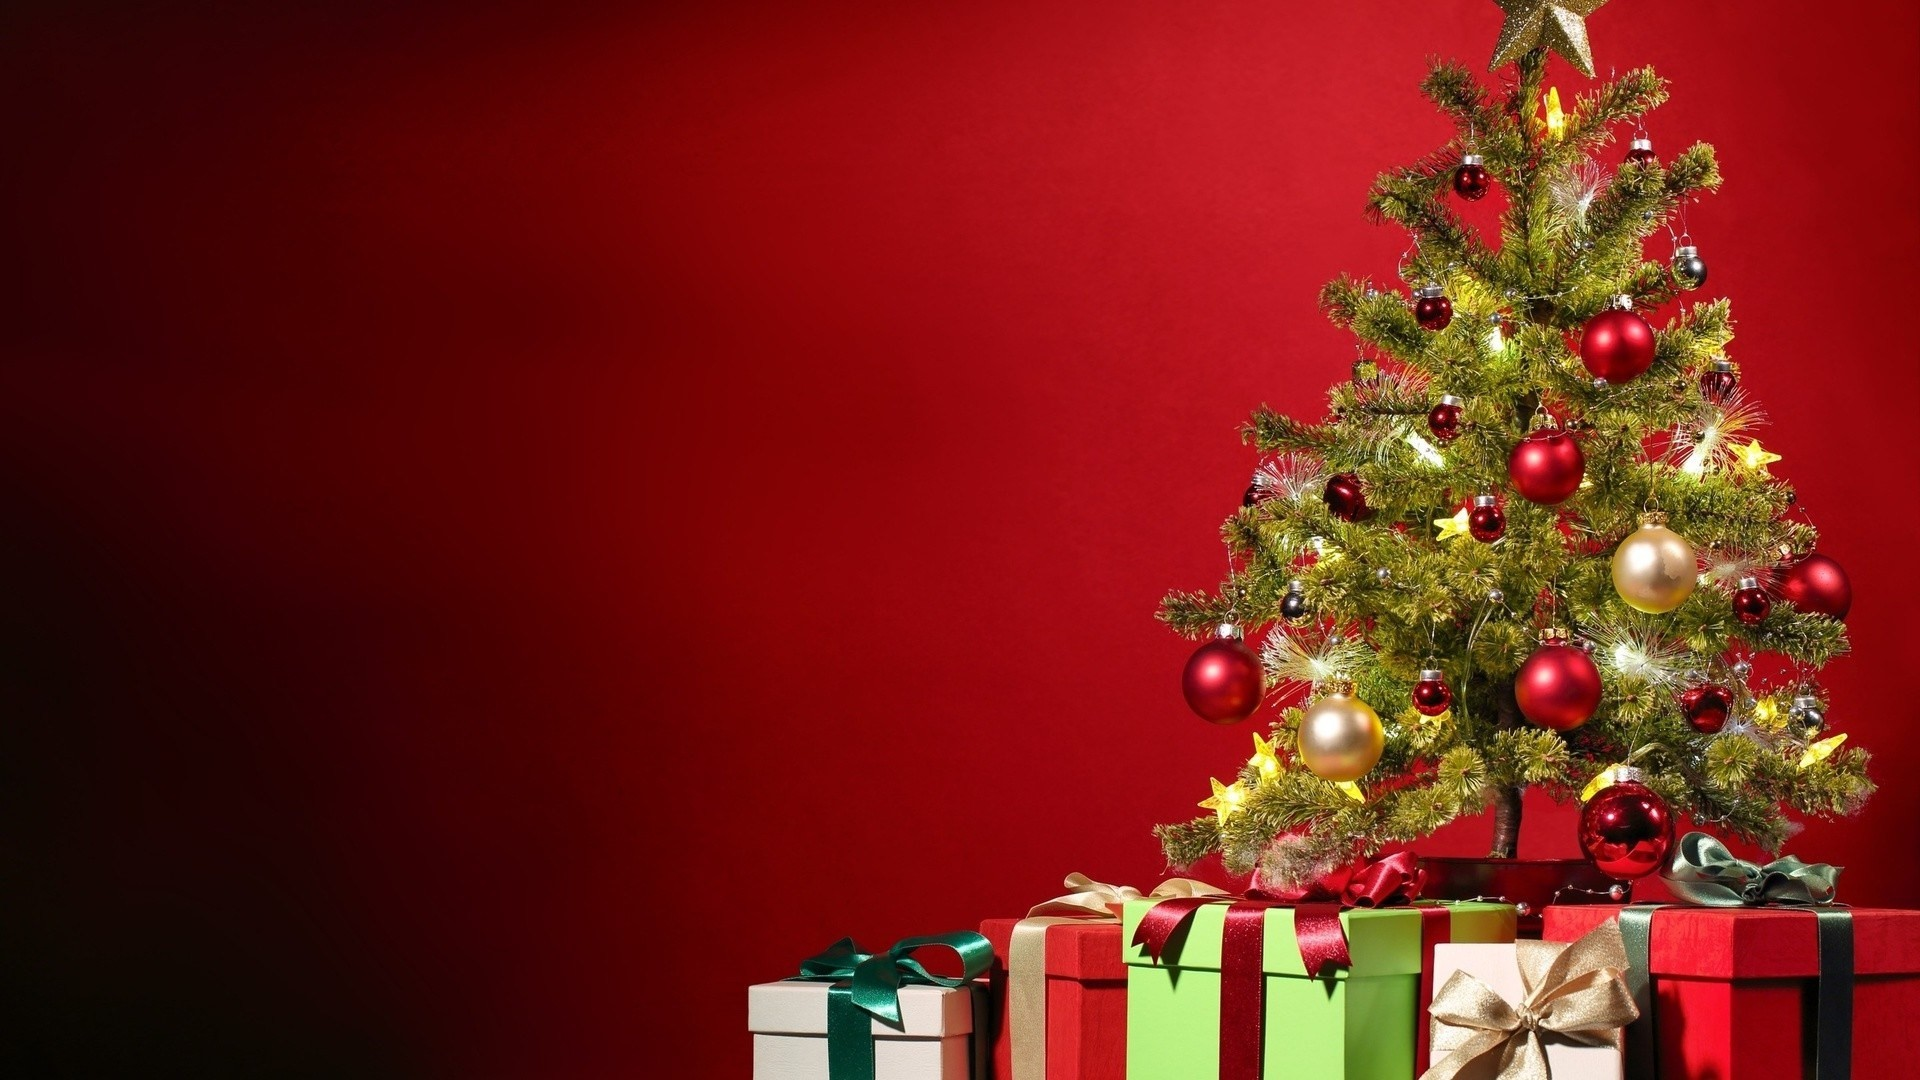 Merry Christmas Wallpapers Hd 2017 Free Download